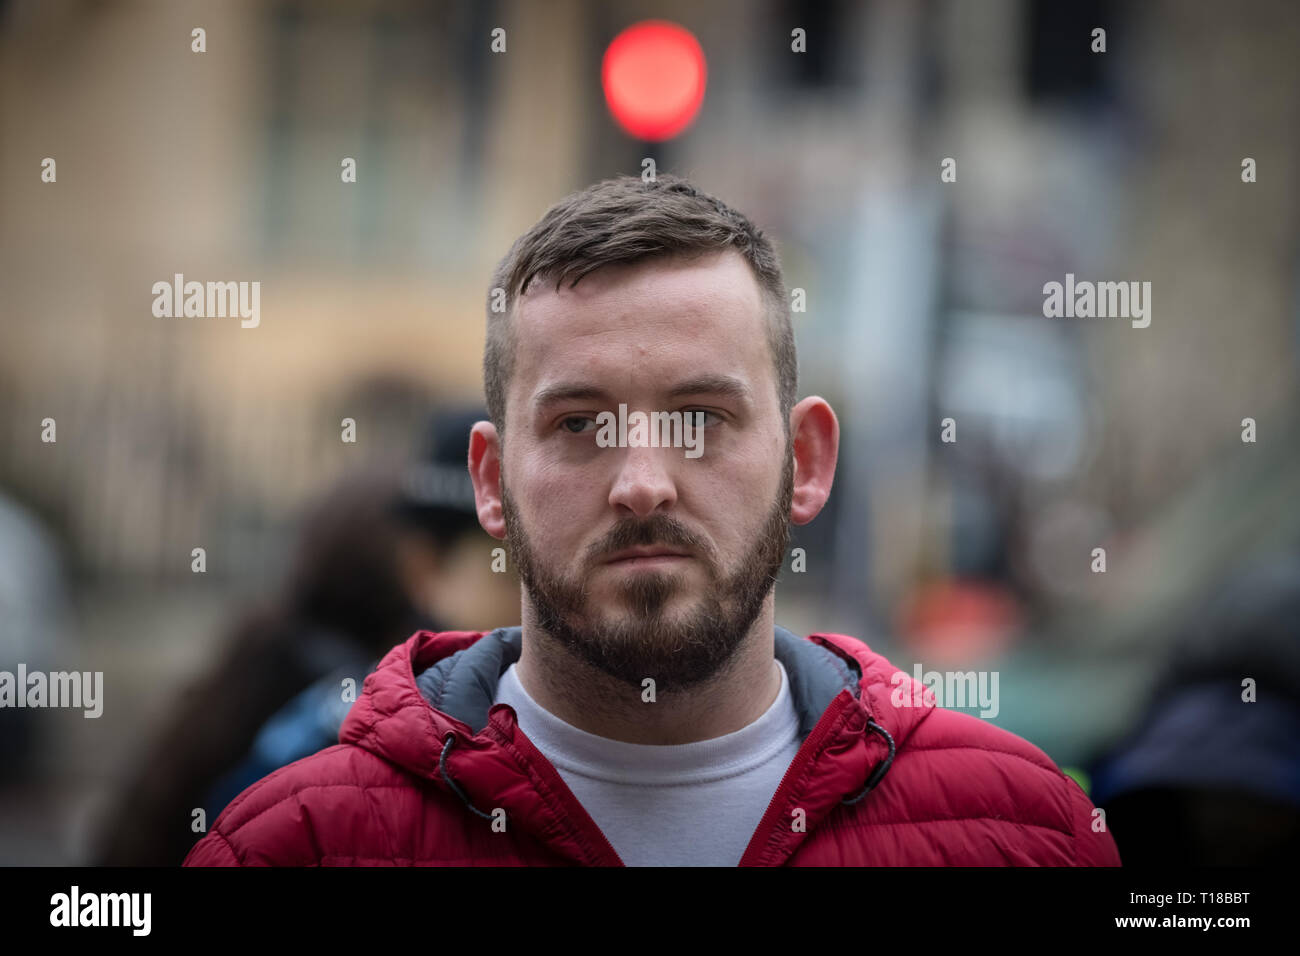 London, UK. 19th March 2019. James Goddard arrives at Westminster Magistrates' Court. Credit: Guy Corbishley/Alamy Live News - Stock Image